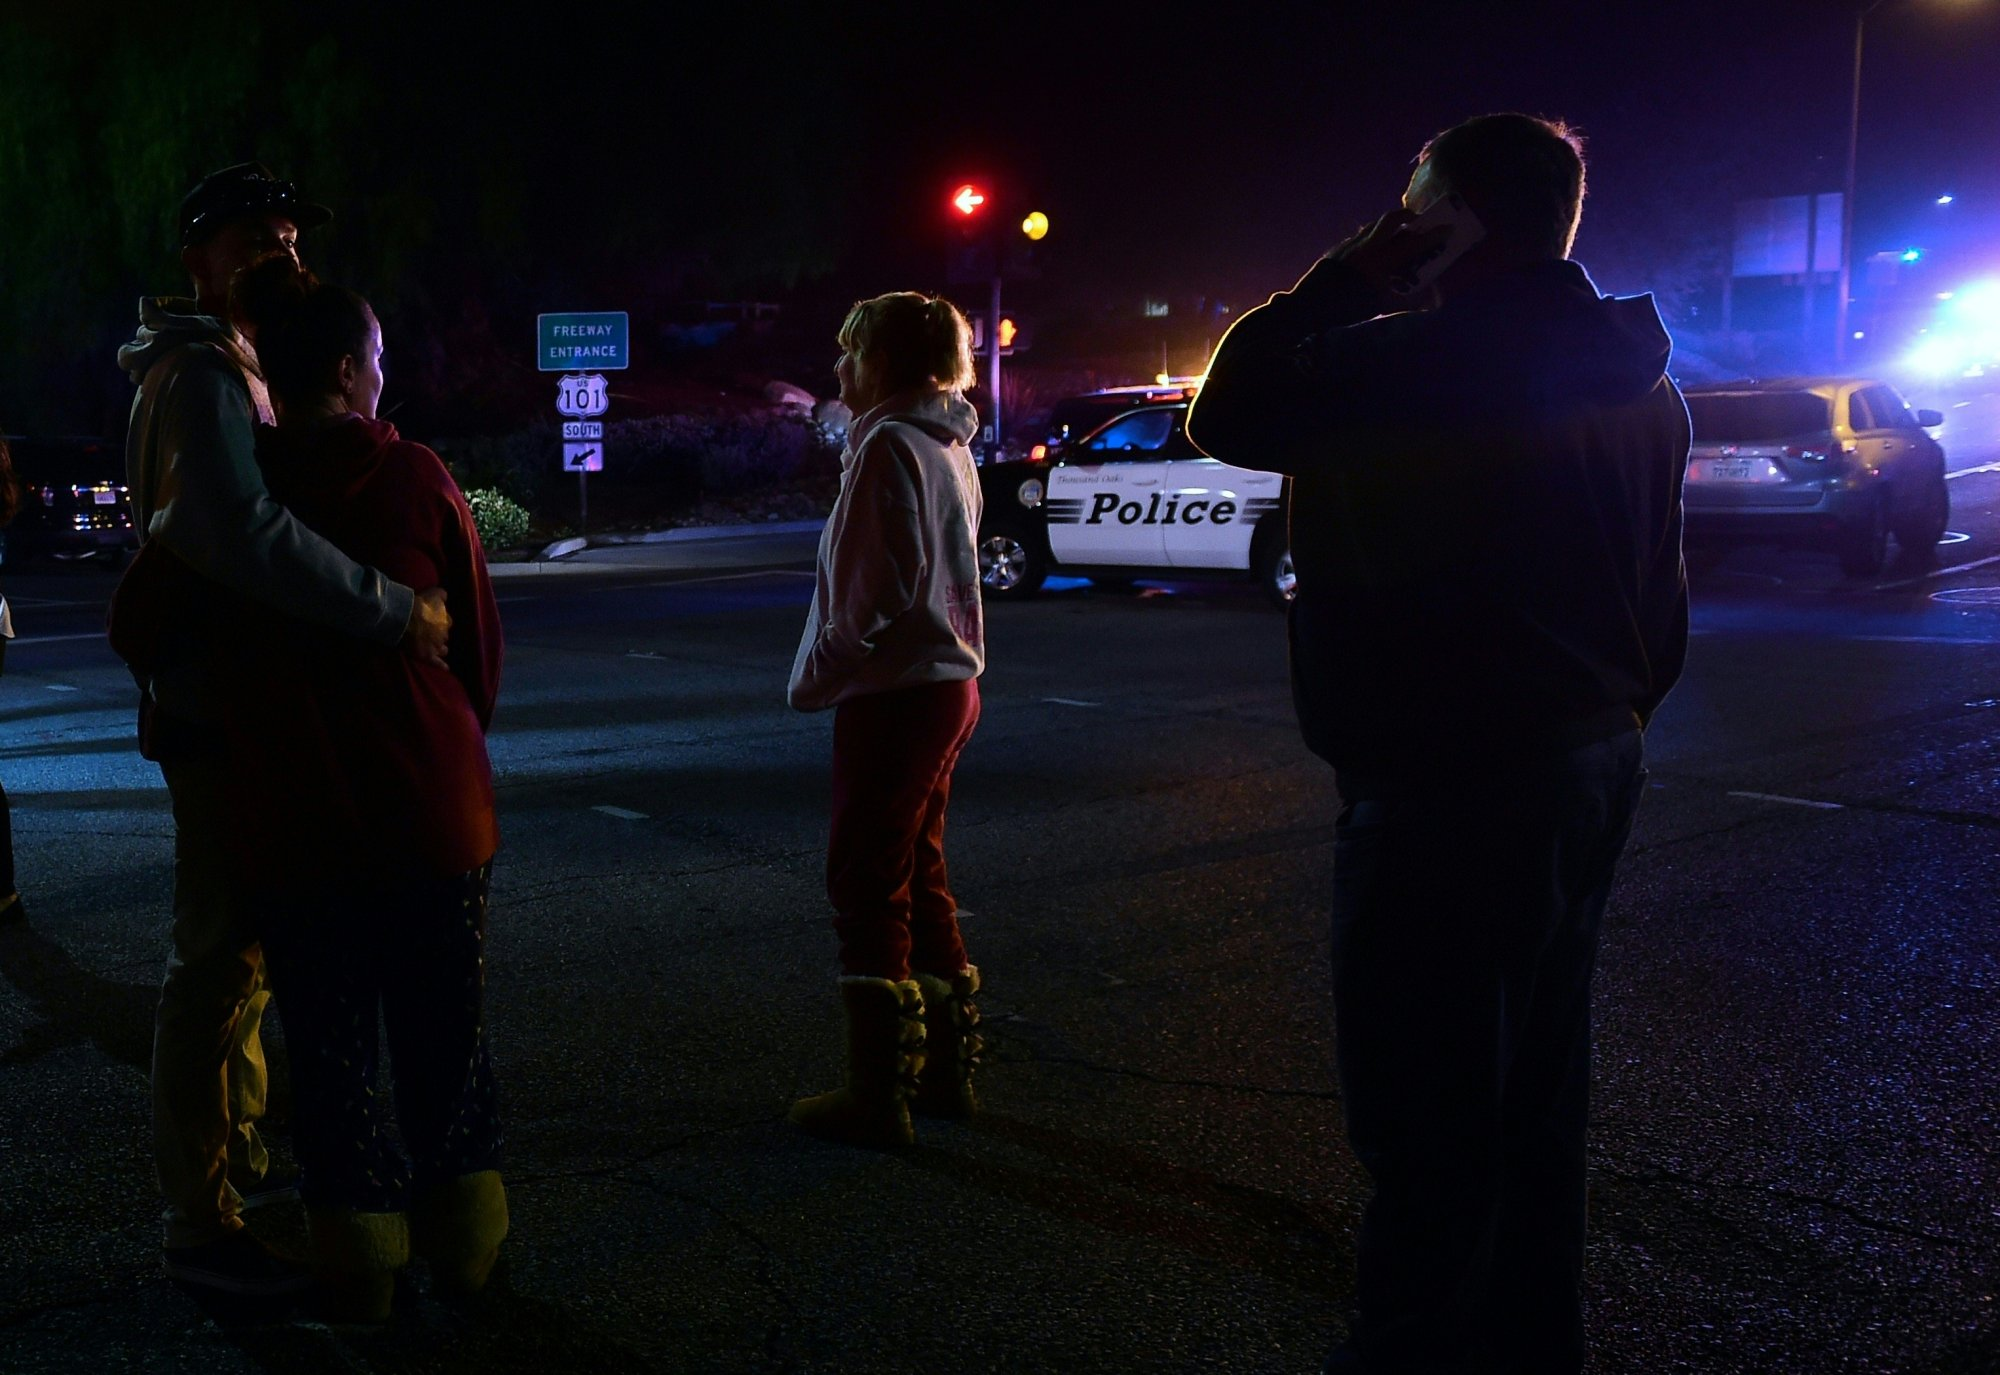 People stand and watch as the scene unfurls from the intersection of US 101 freeway and the Moorpark Rad exit as police vehicles close off the area outside a country music bar and dance hall in Thousand Oaks, west of Los Angeles, where a gunman opened fire late November 7, 2018, killing at least 12 people, US police said. (Photo by Frederic J. BROWN / AFP)        (Photo credit should read FREDERIC J. BROWN/AFP/Getty Images)